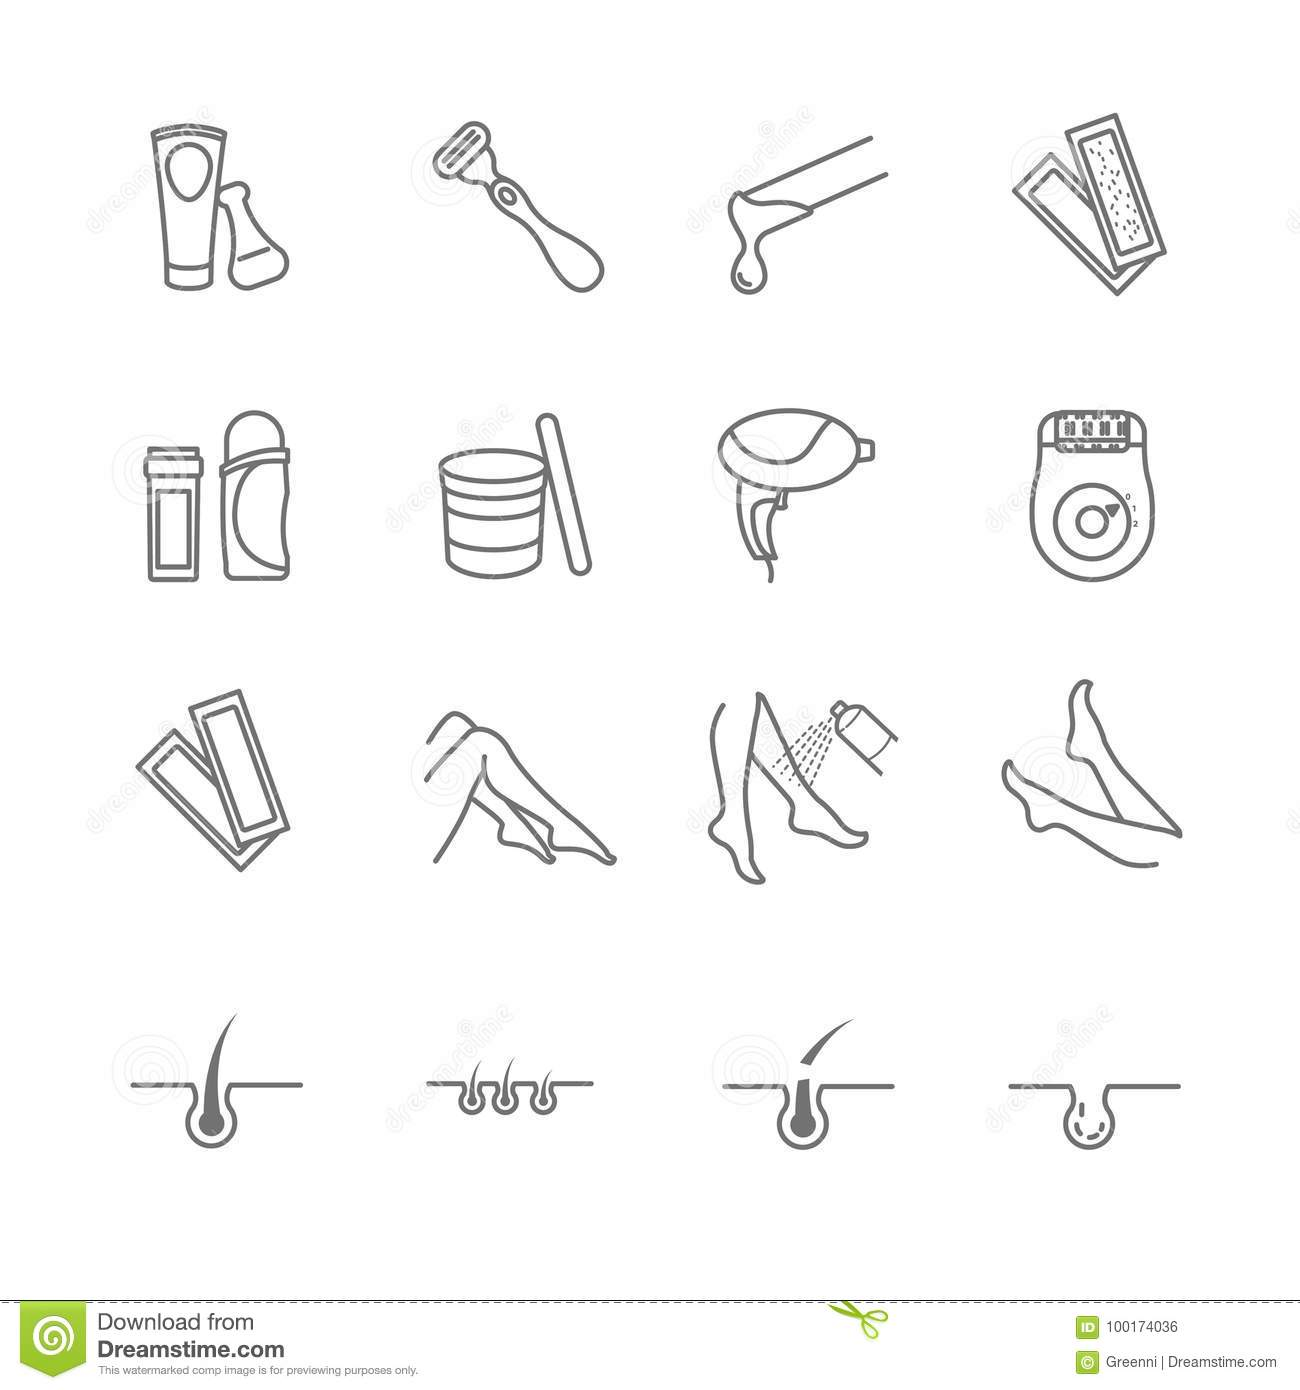 removal cartoons  illustrations  u0026 vector stock images